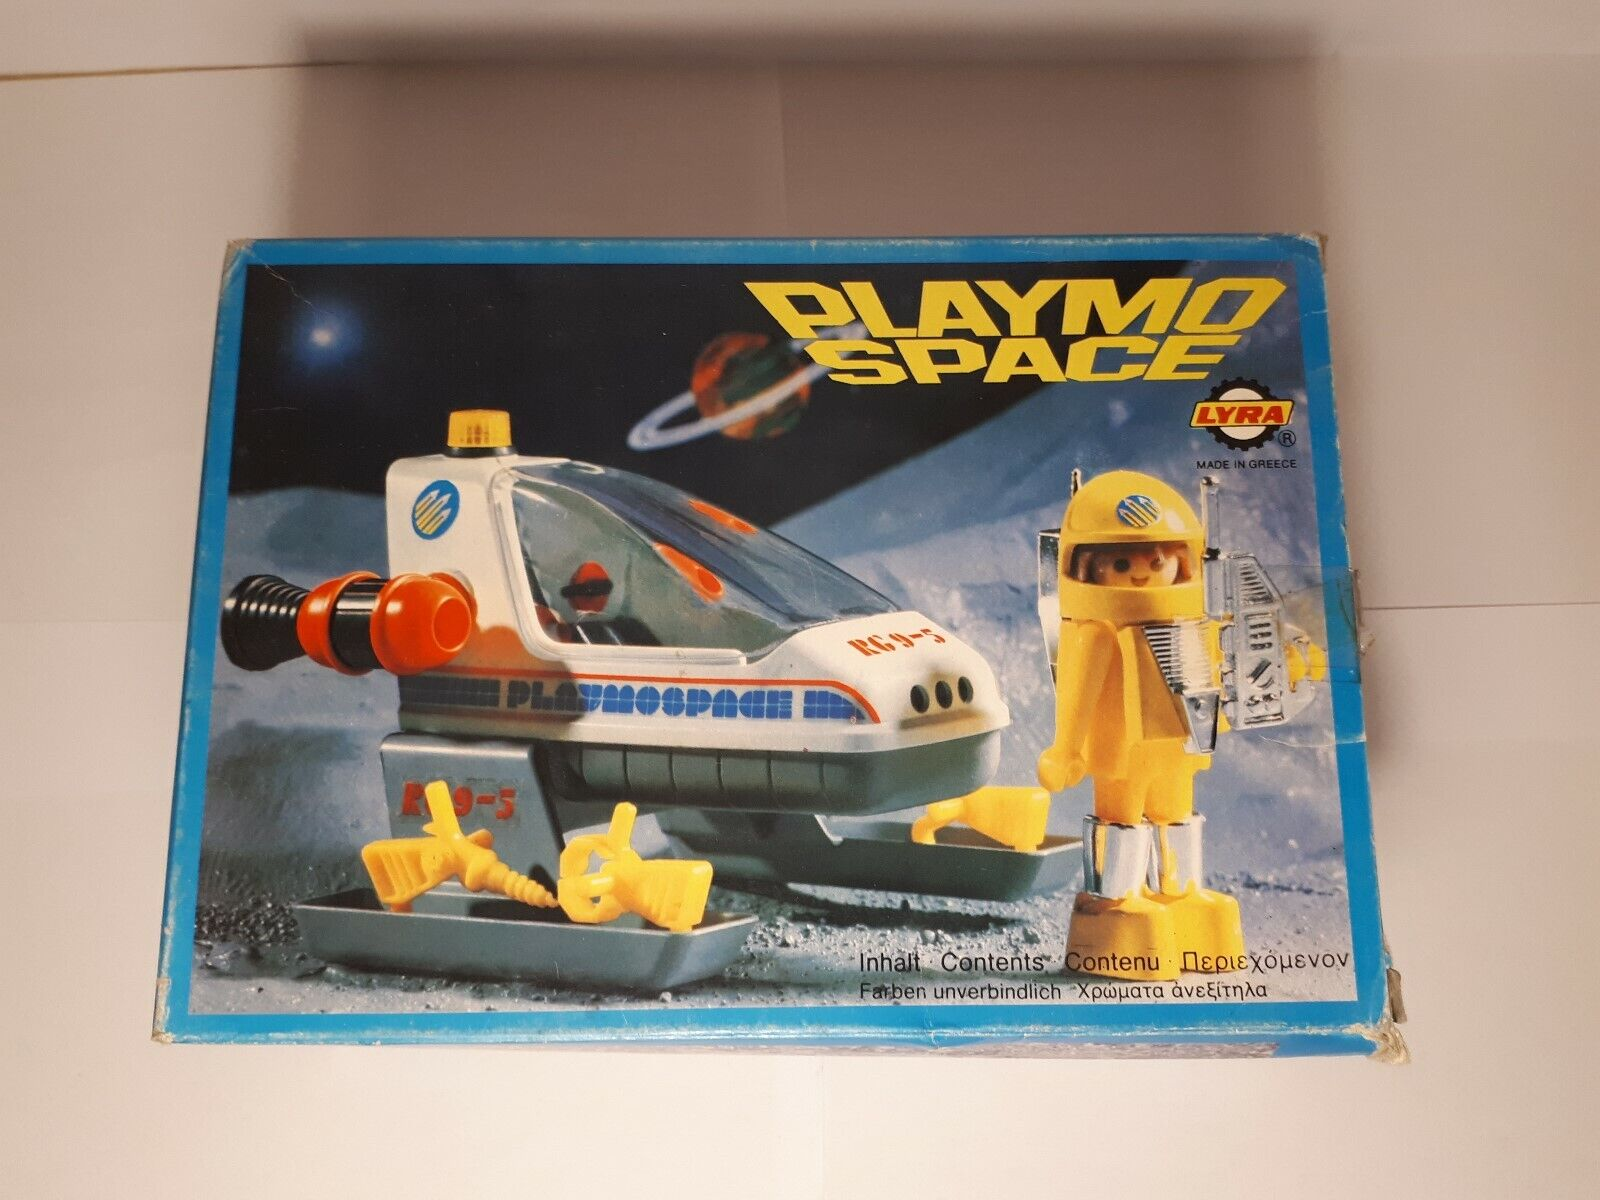 Playmobil Playmobil Playmobil LYRA - PLAYMO SPACE - no.3509 b484c3